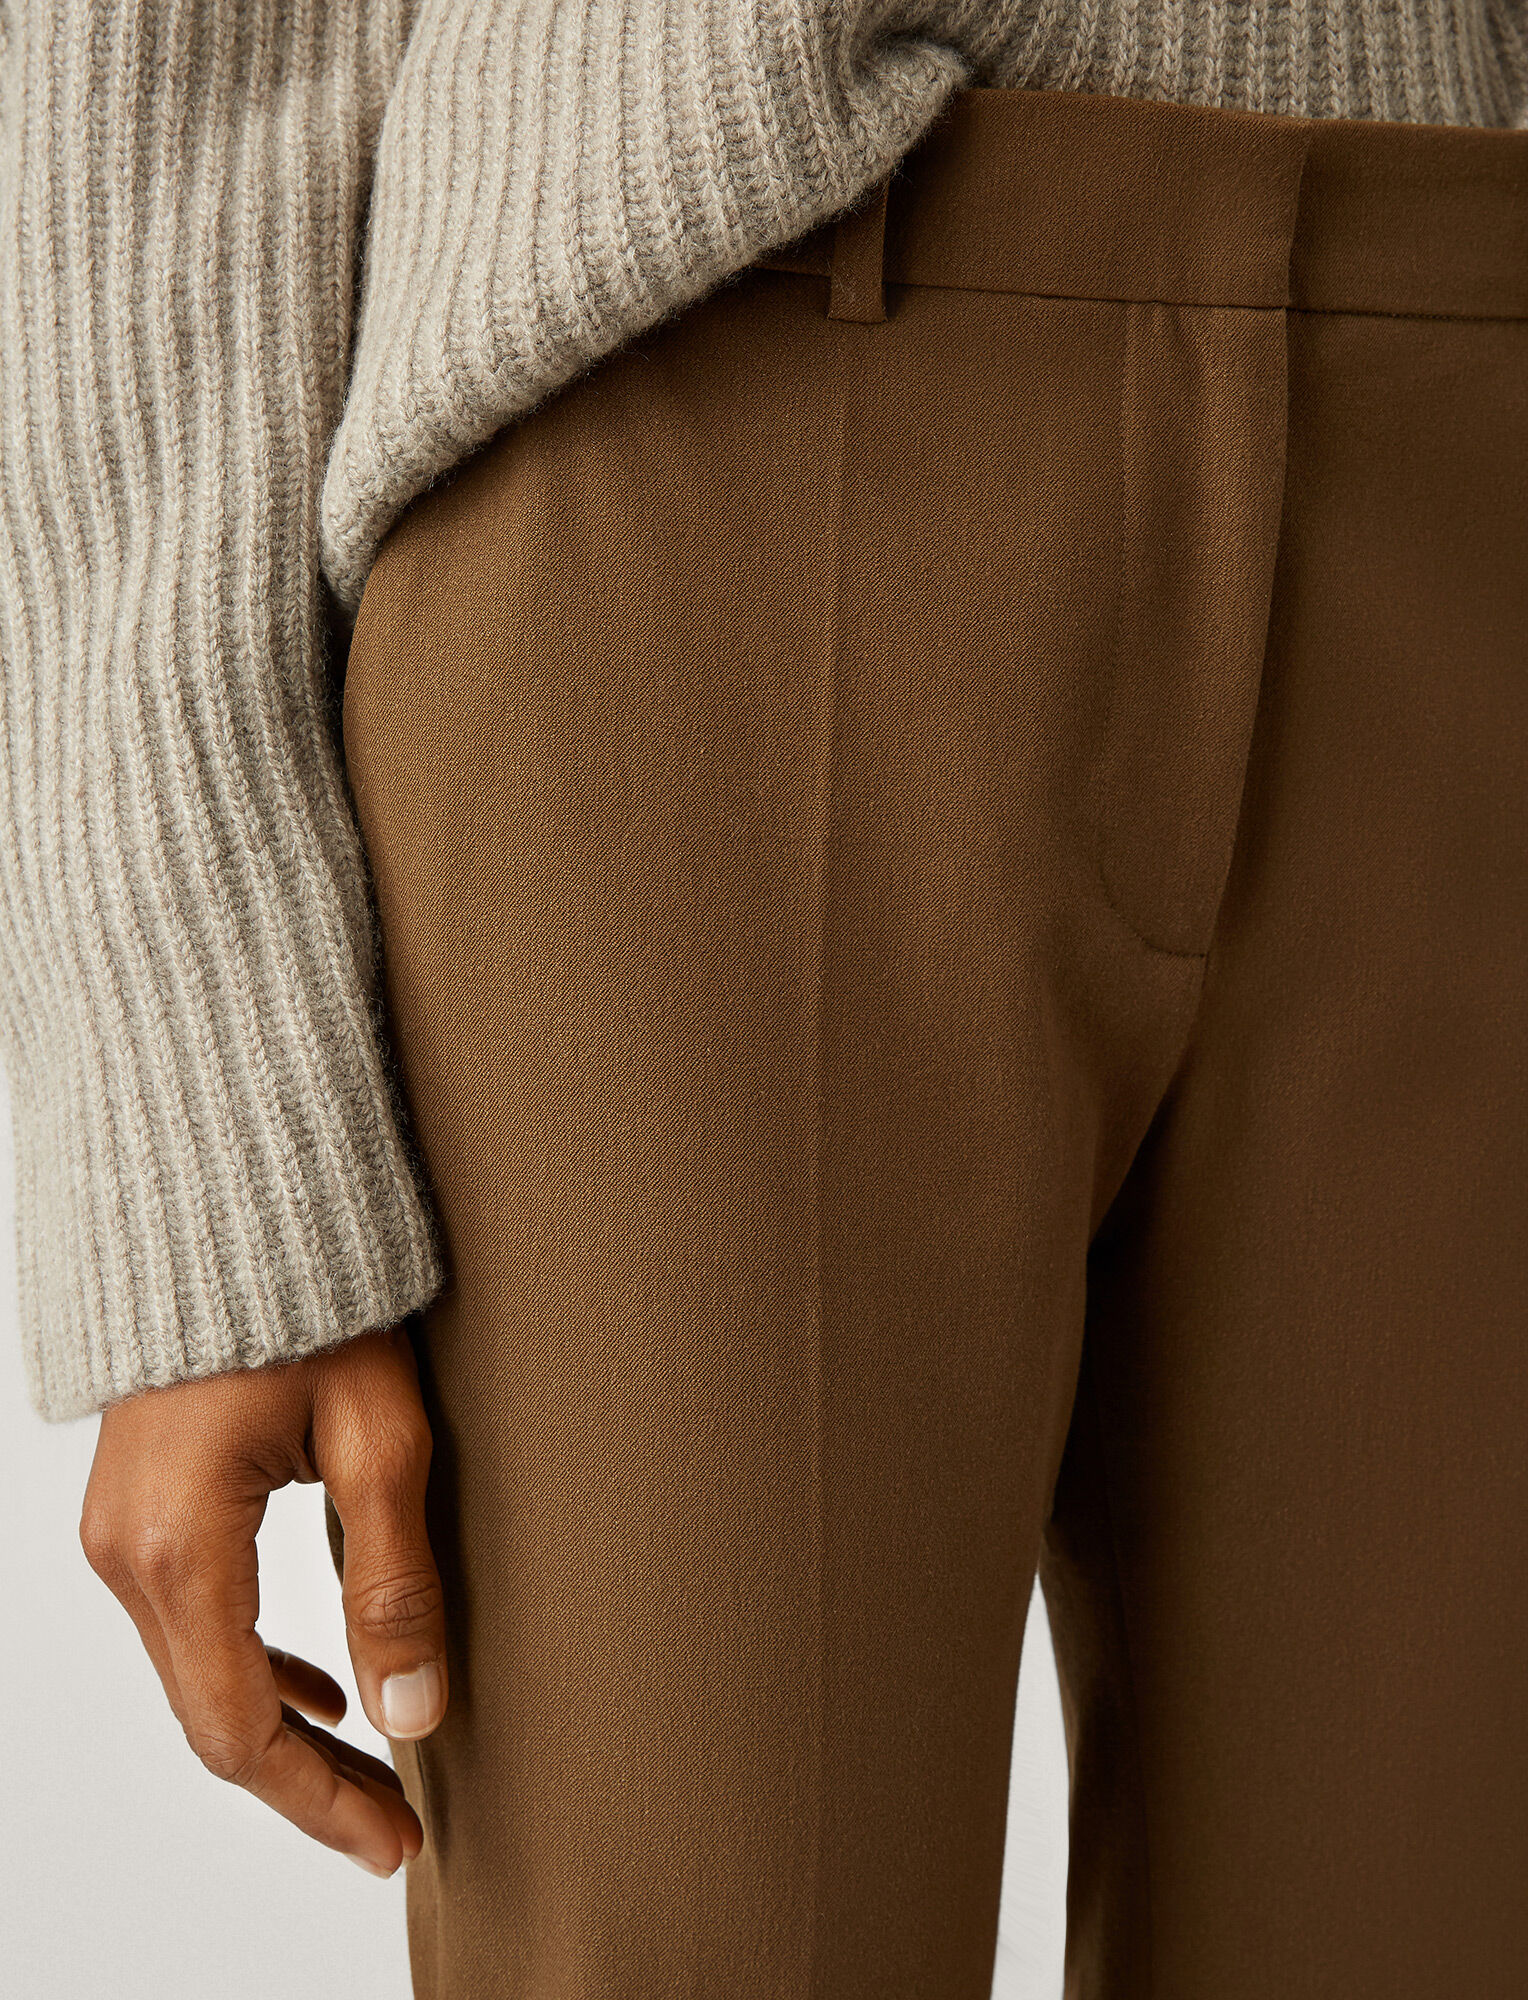 Joseph, Coleman Gabardine Stretch Trousers, in KHAKI